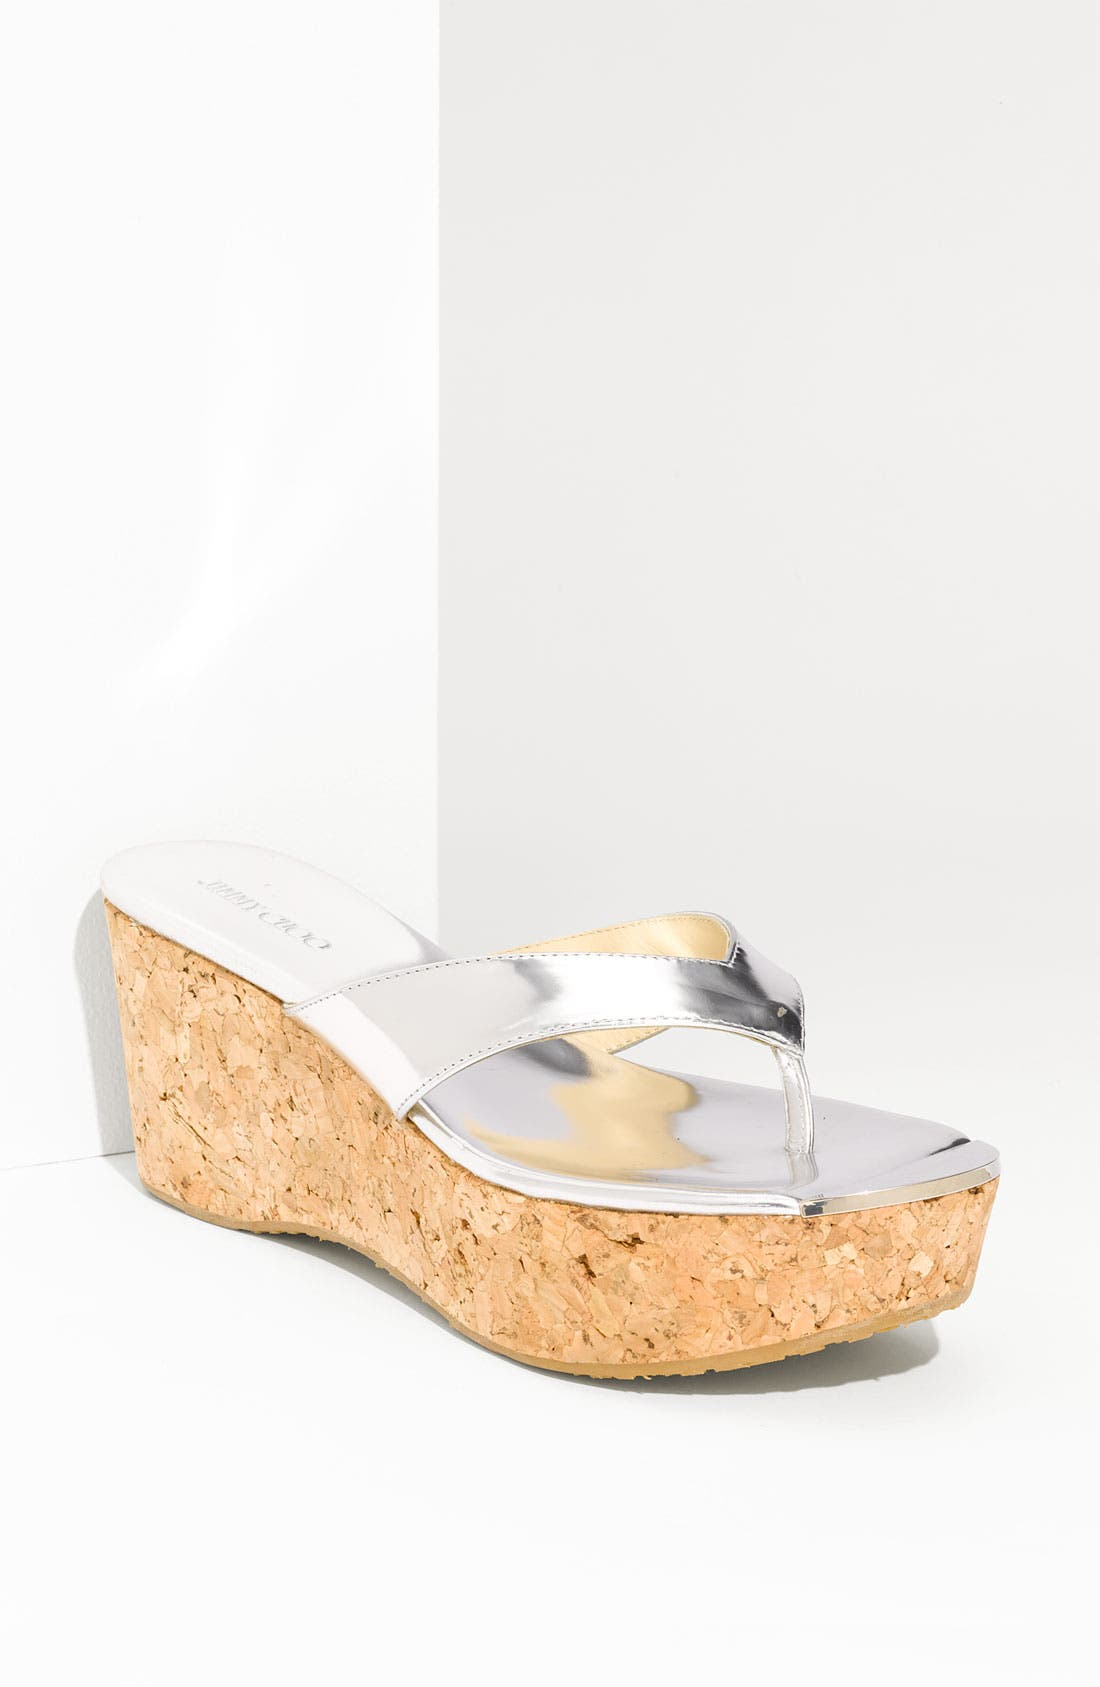 Main Image - Jimmy Choo 'Pathos Pat' Cork Wedge Sandal